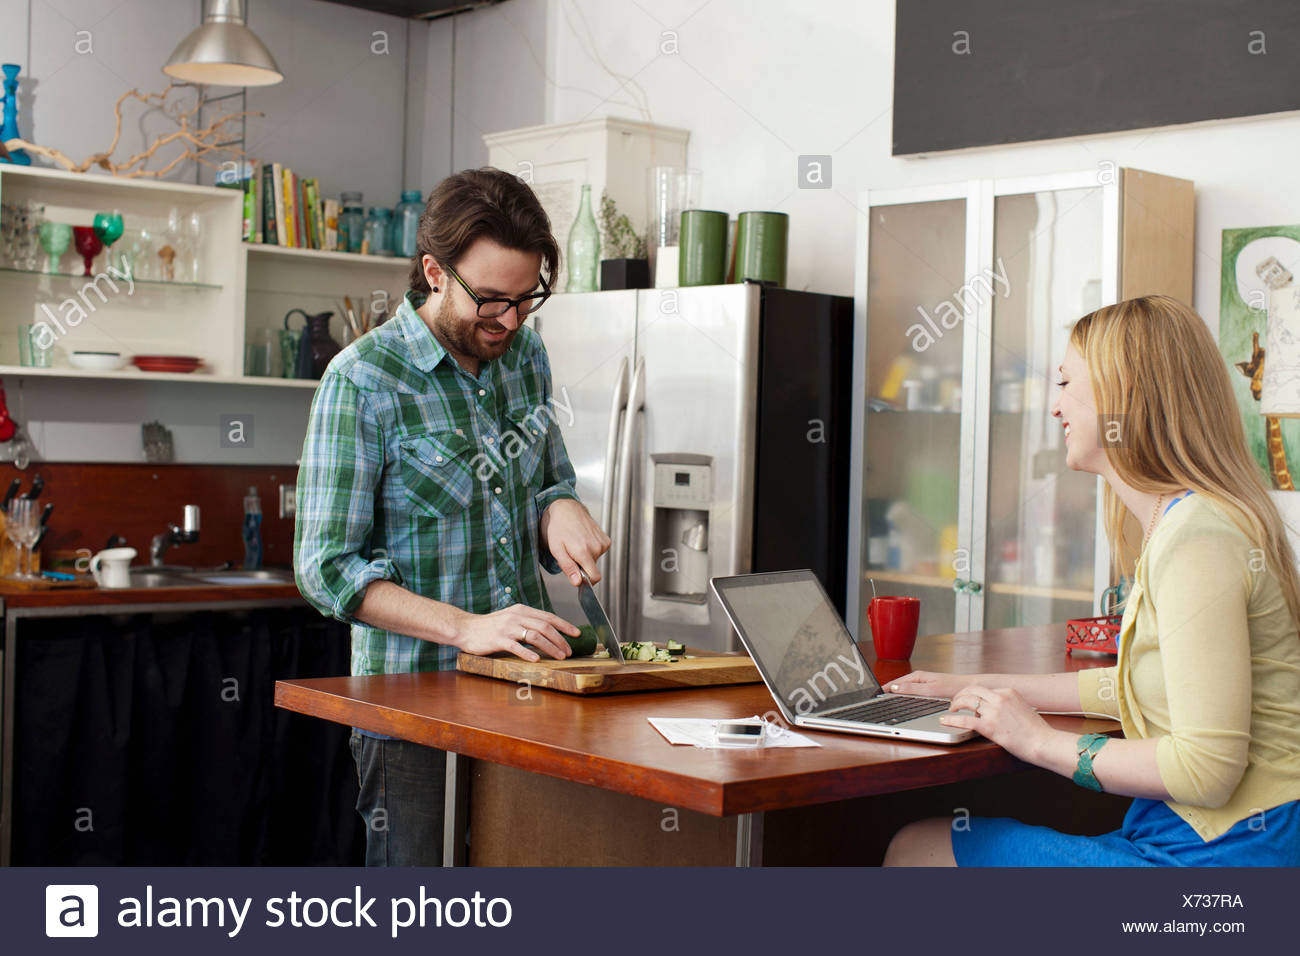 Woman on laptop computer, man chopping vegetables - Stock Image